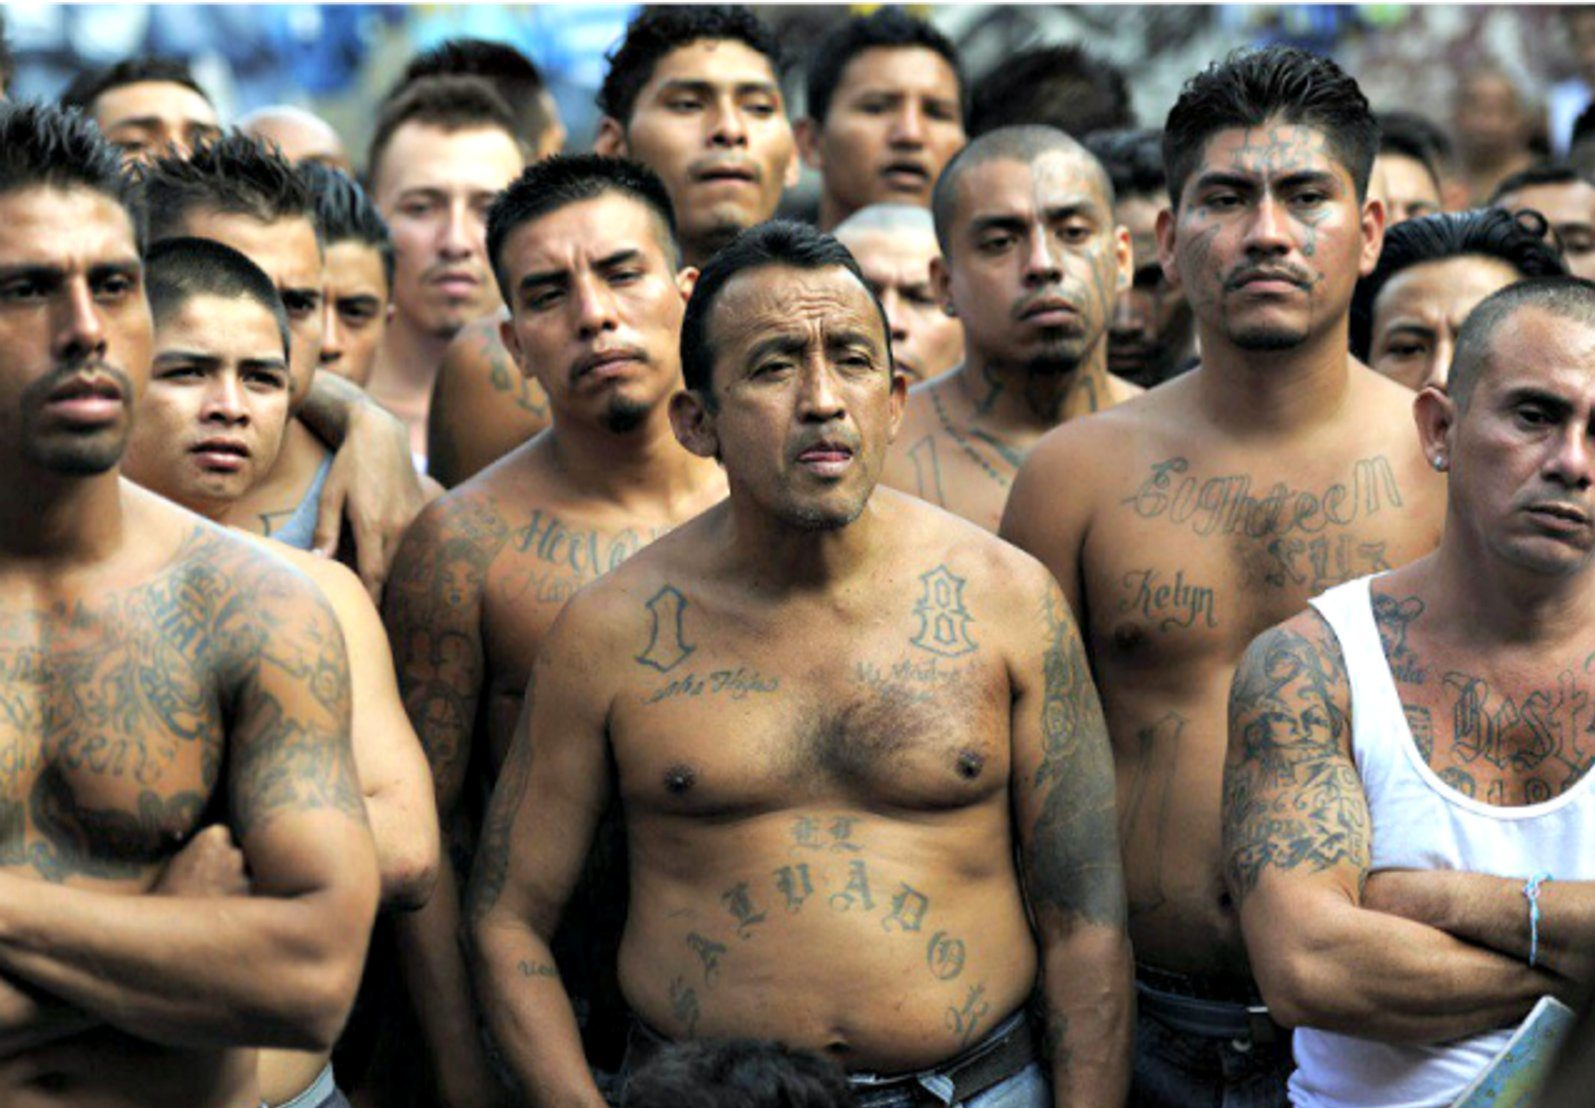 MS-13 members: Trump makes the gang stronger - CNN